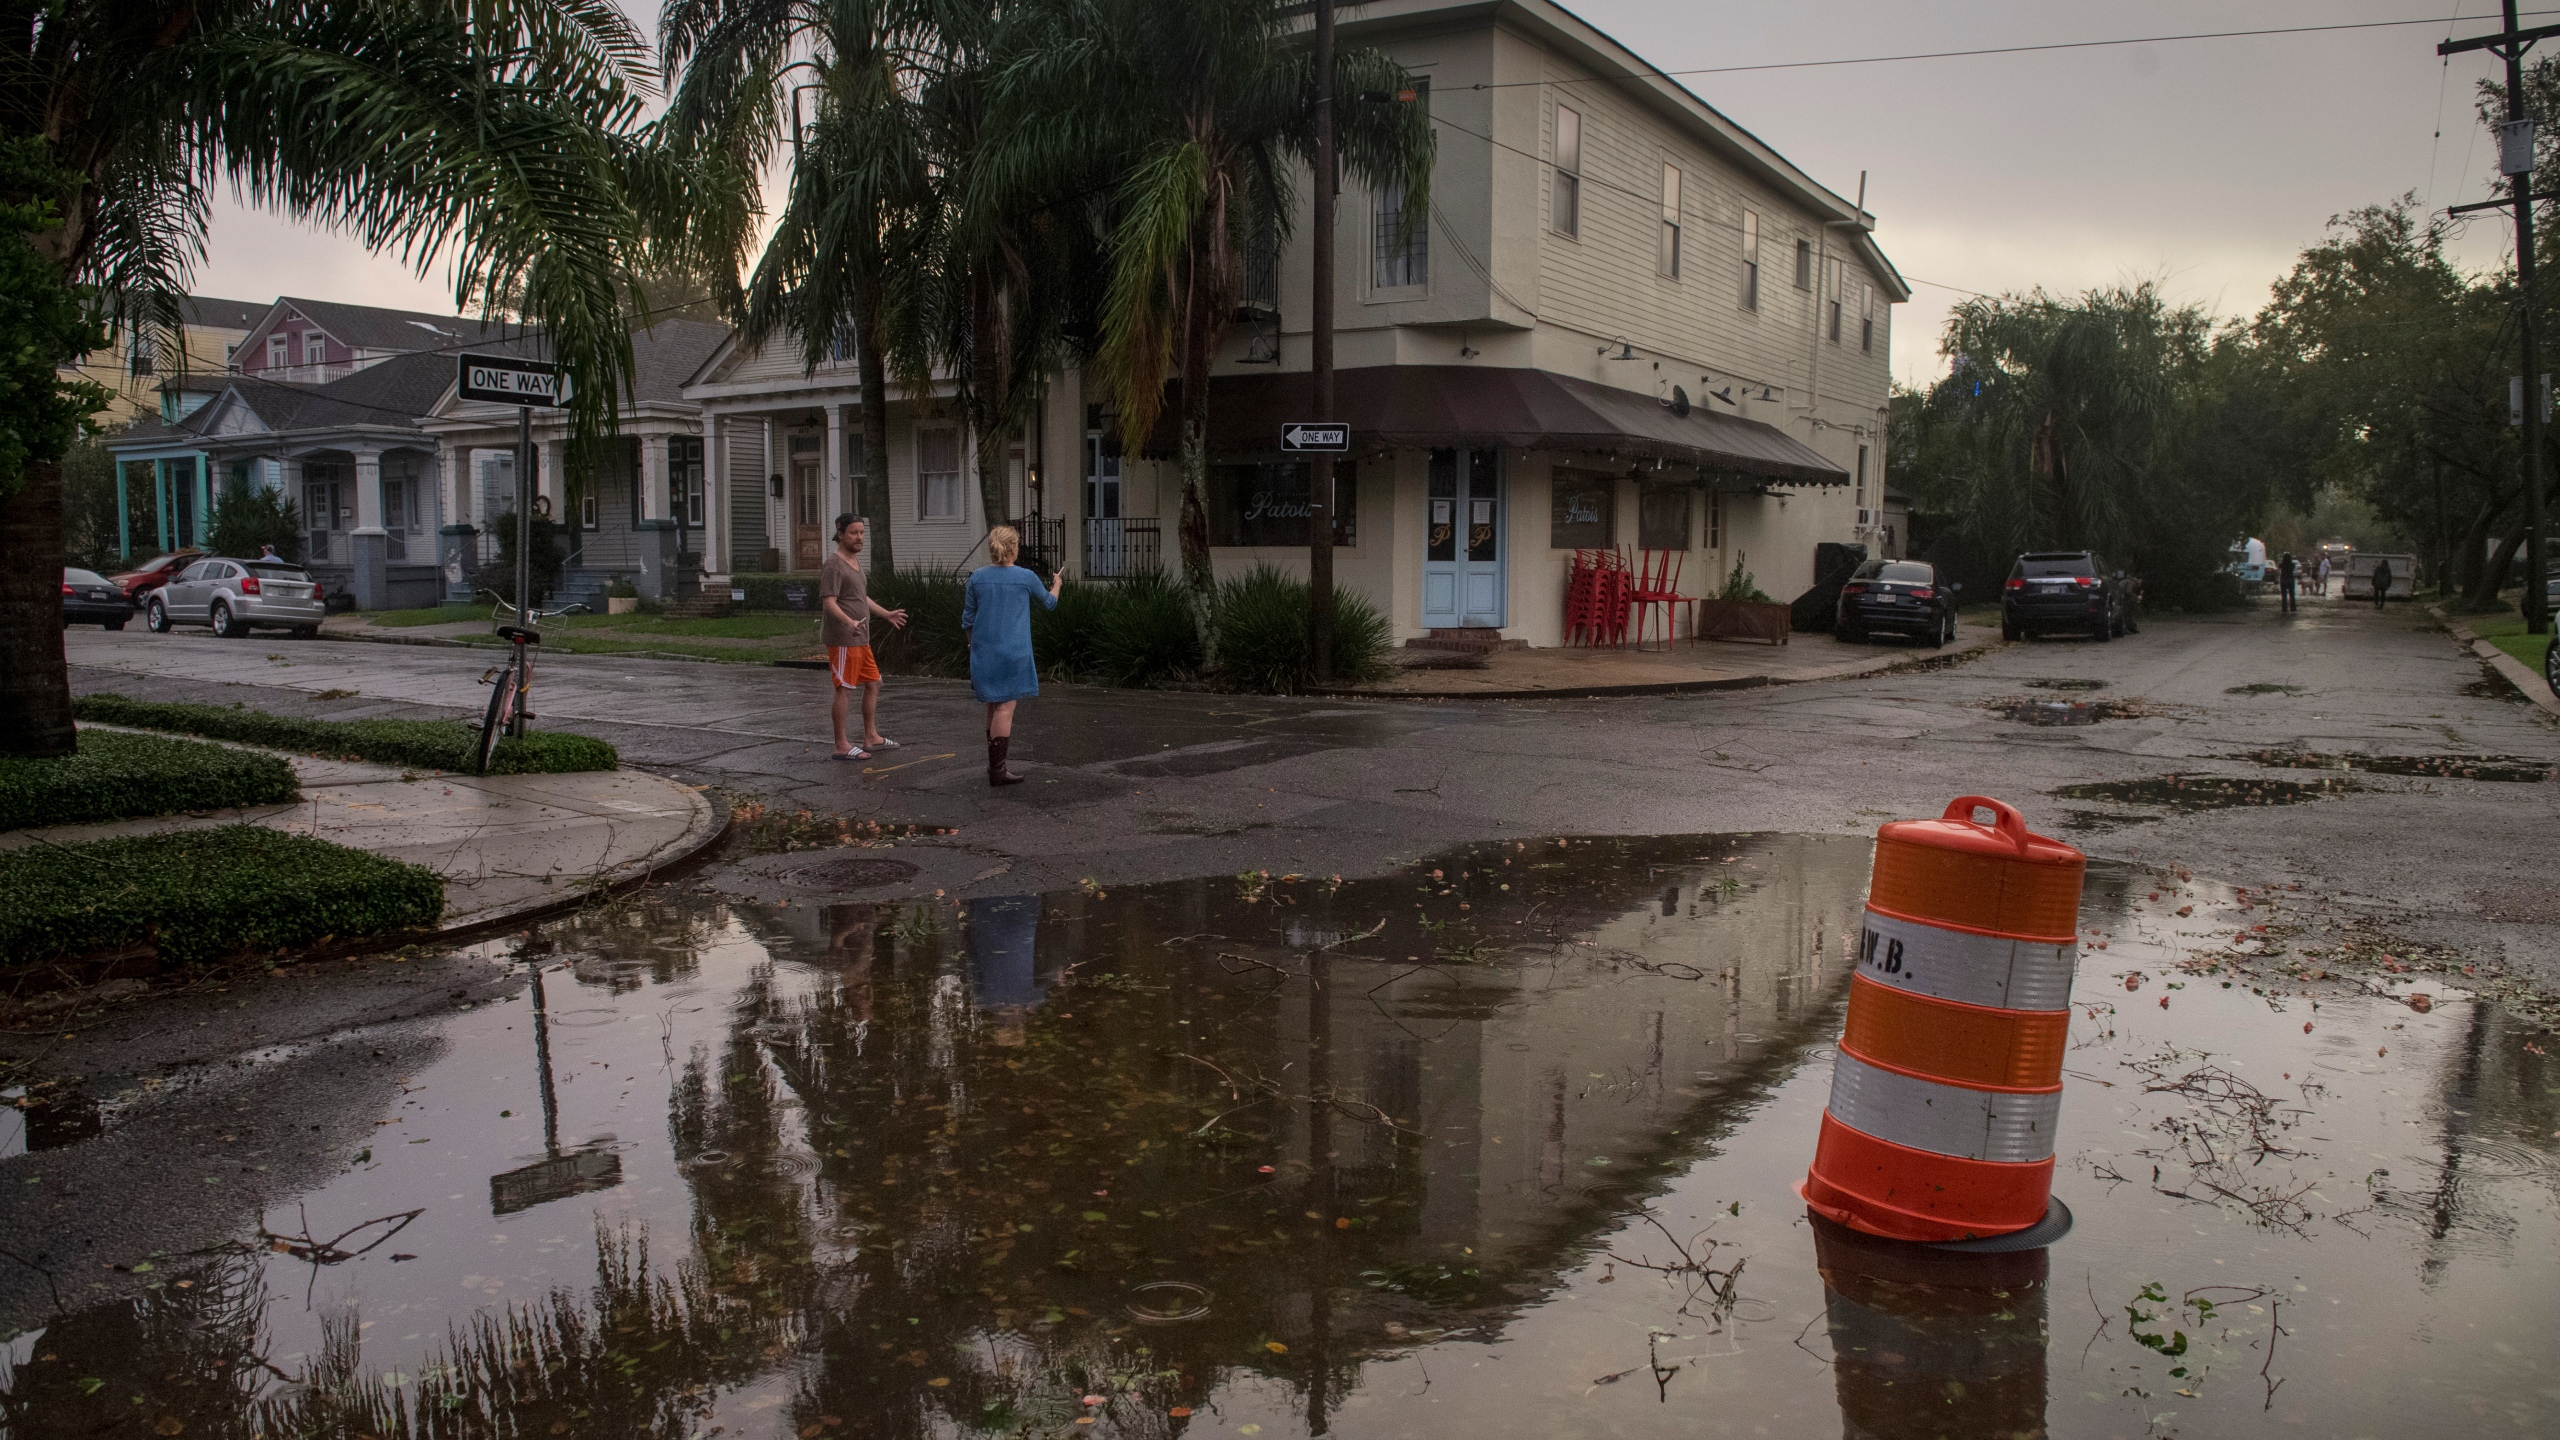 Residents come out to assess the damage from Hurricane Zeta on Wednesday, Oct. 28, 2020, near the restaurant Patois in New Orleans. (Chris Granger/The Times-Picayune/The New Orleans Advocate via AP)